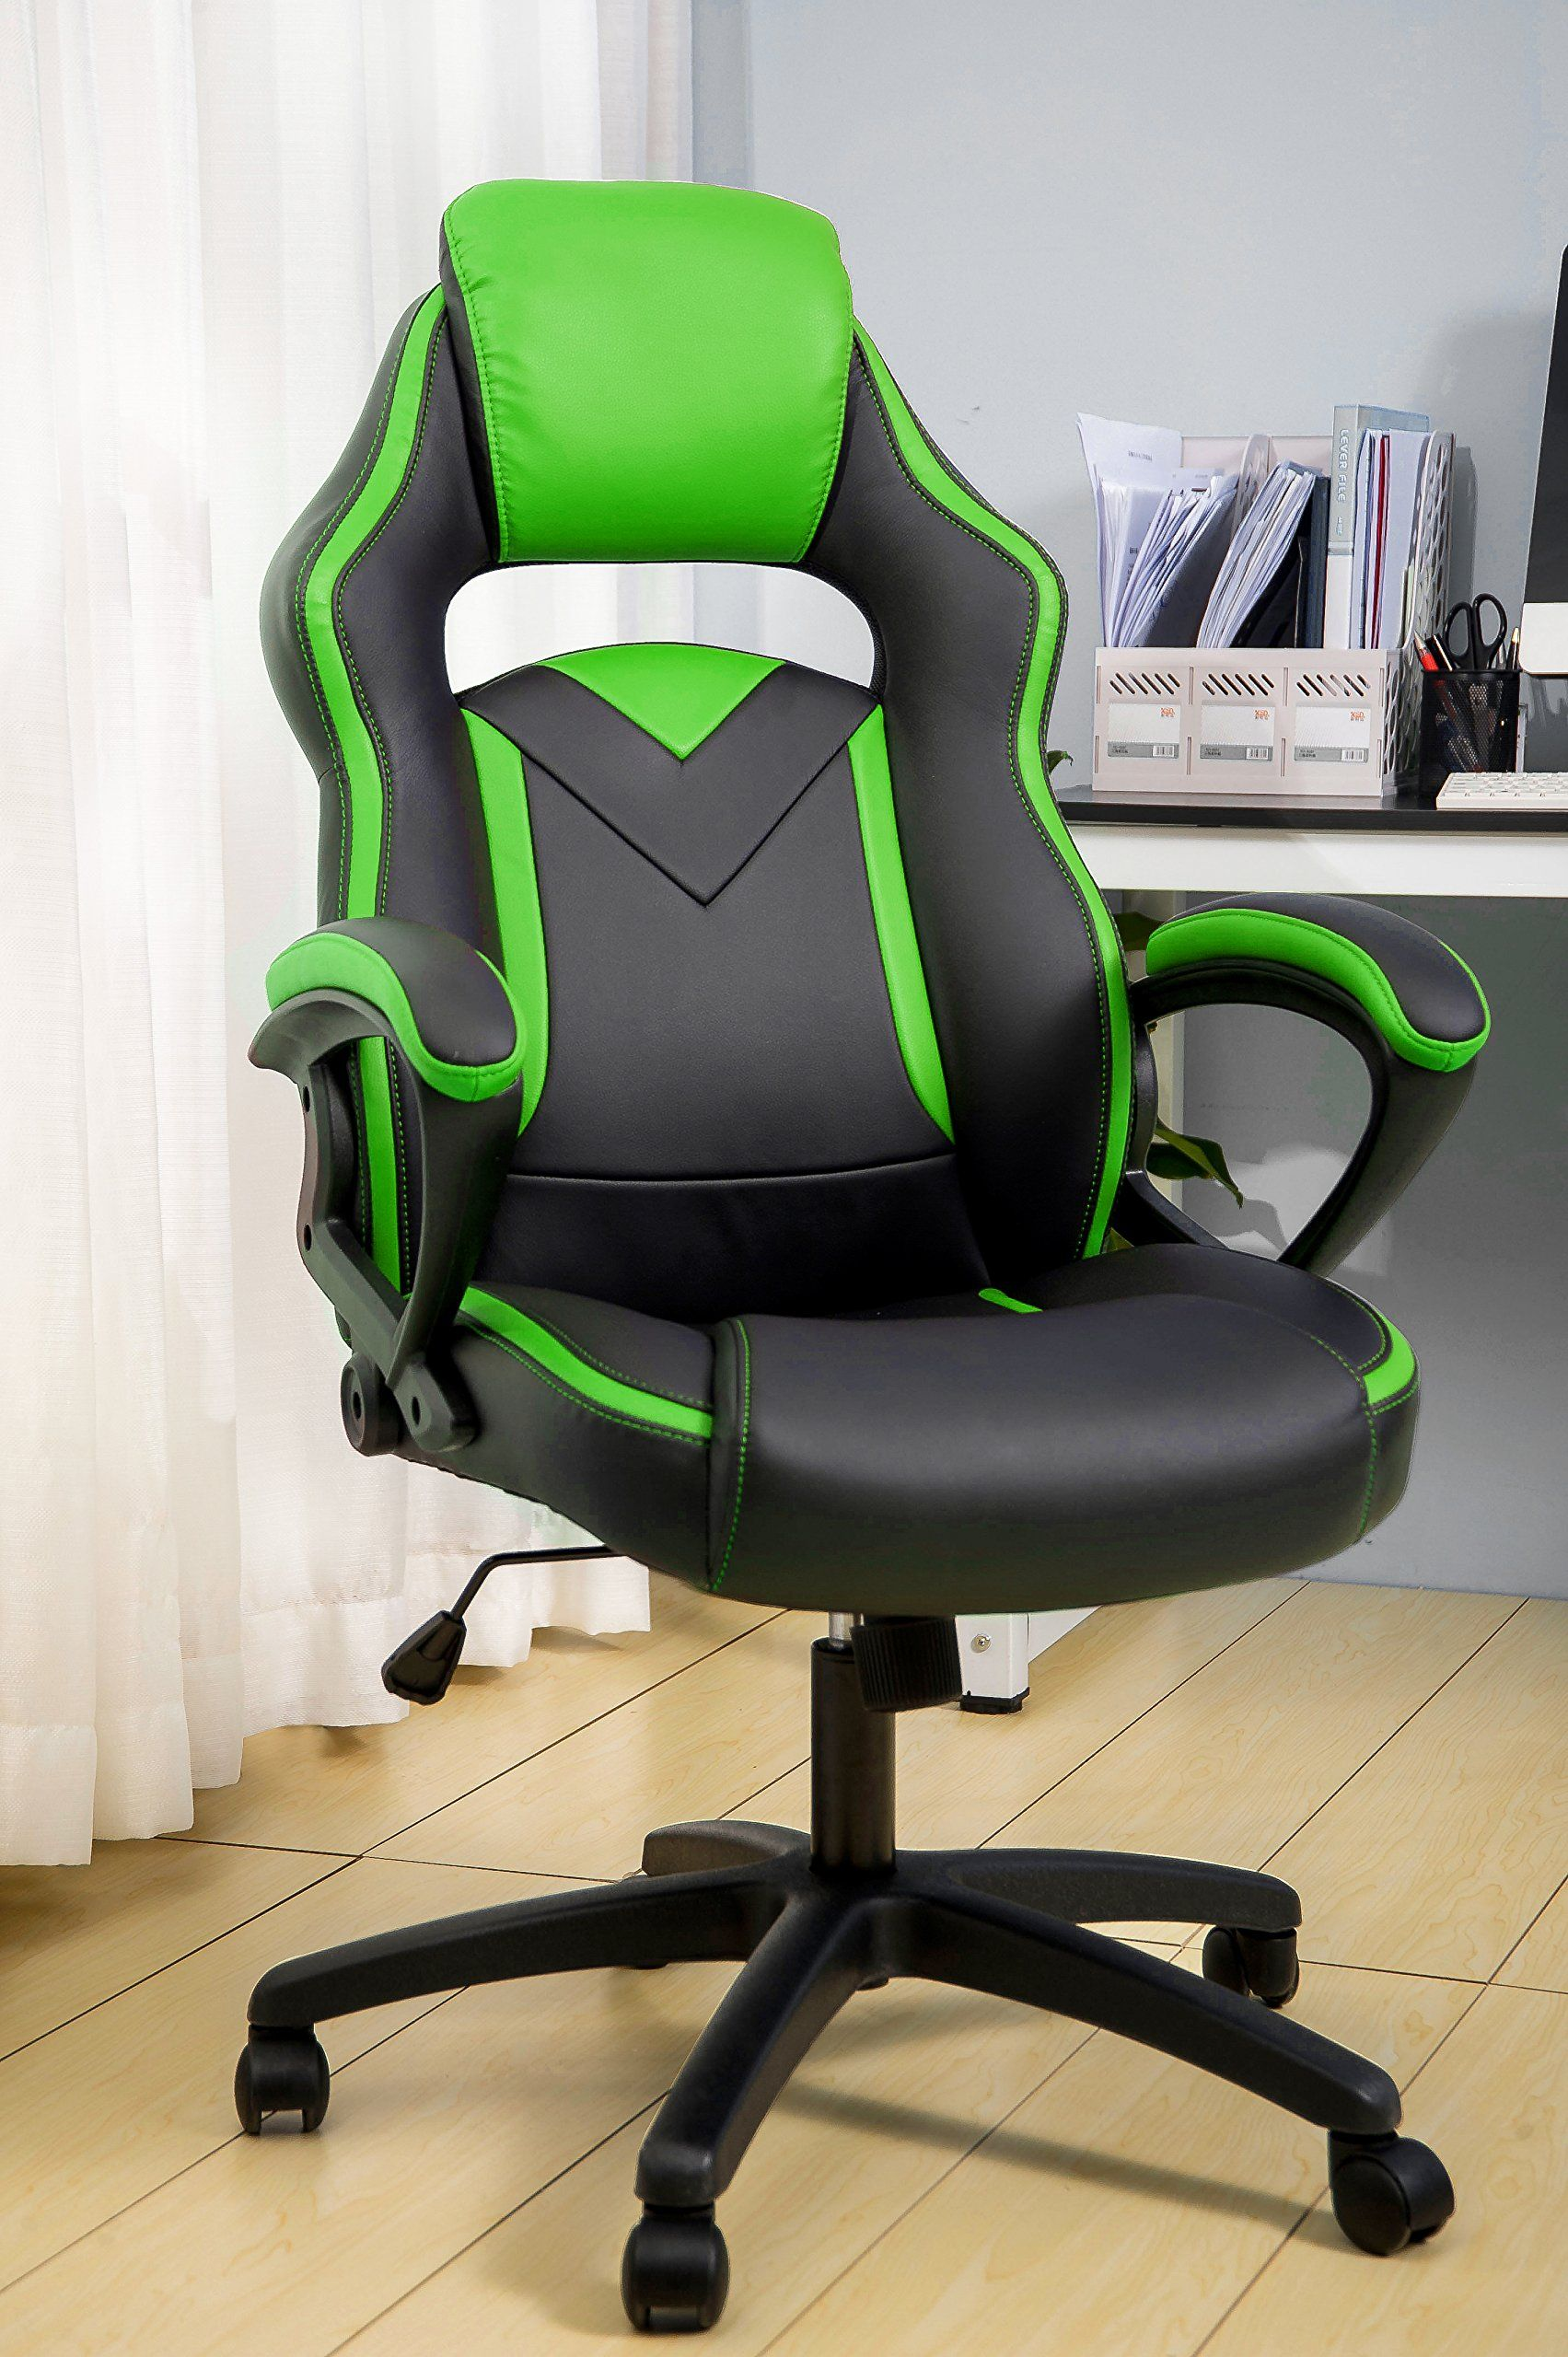 Merax Office Chair Computer Gaming Desk Chair Racing Style Ergonomic Design  Office Chair (green)